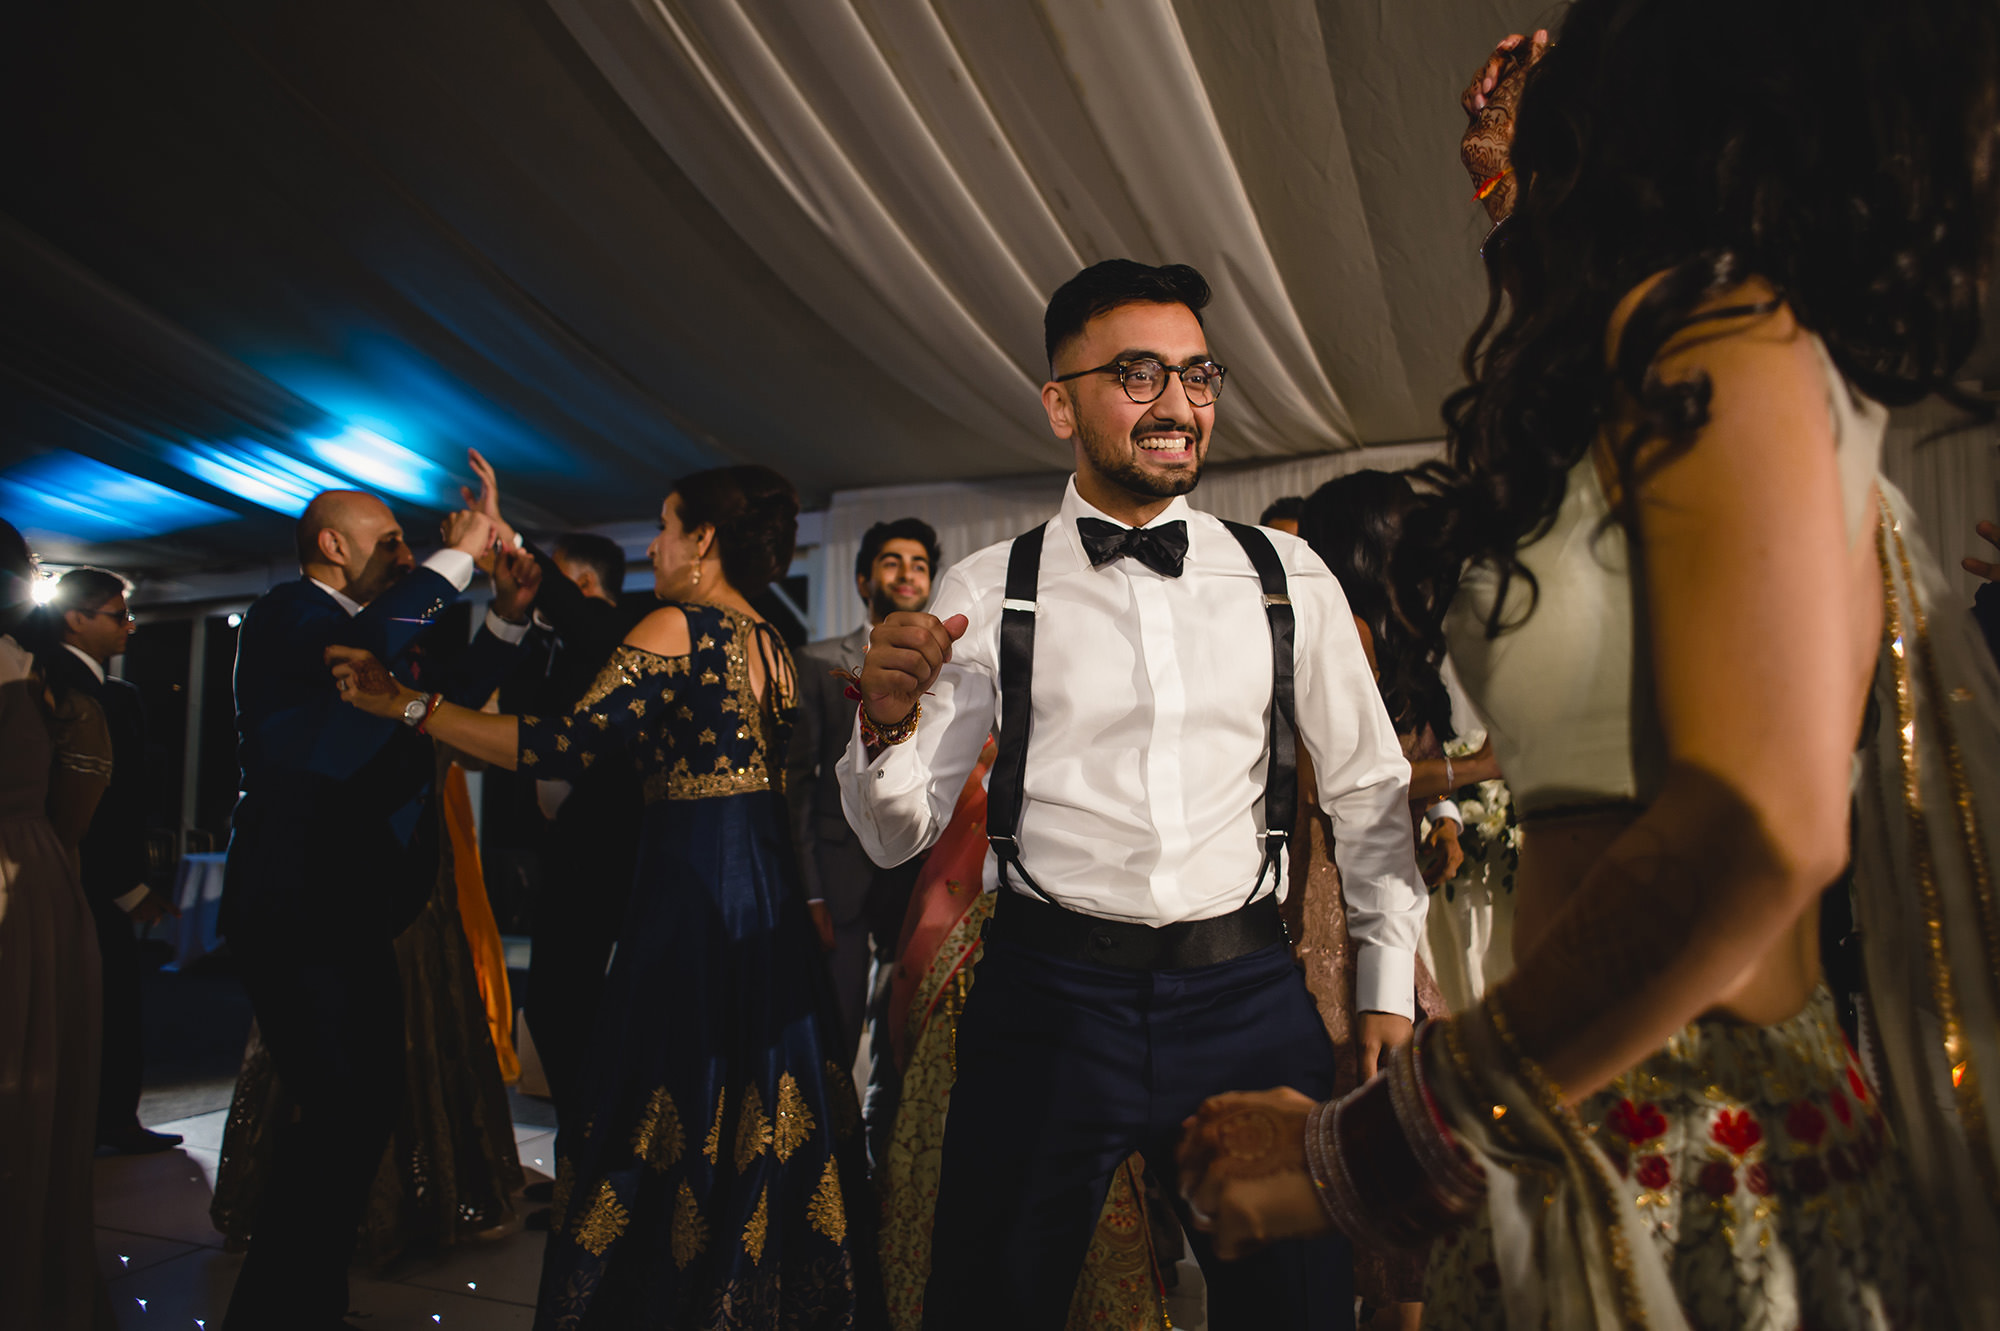 groom dancing on dance floor